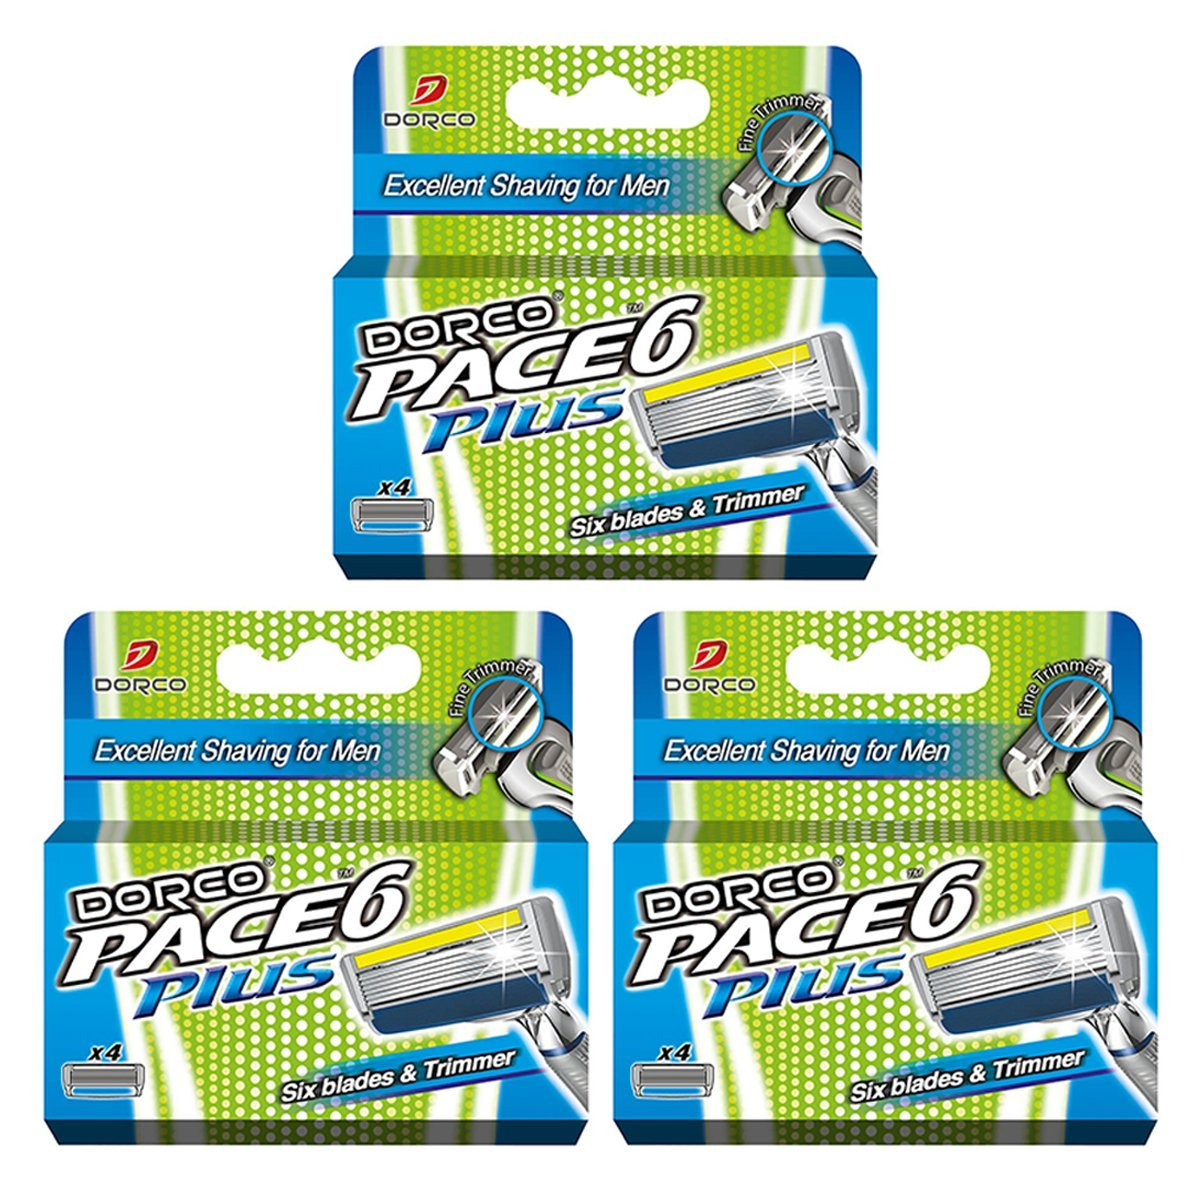 Dorco Pace 6+ Razor Manual Blades for Men - 12 Blades - Safe & Sensitive Shaving System with Trimmer product image